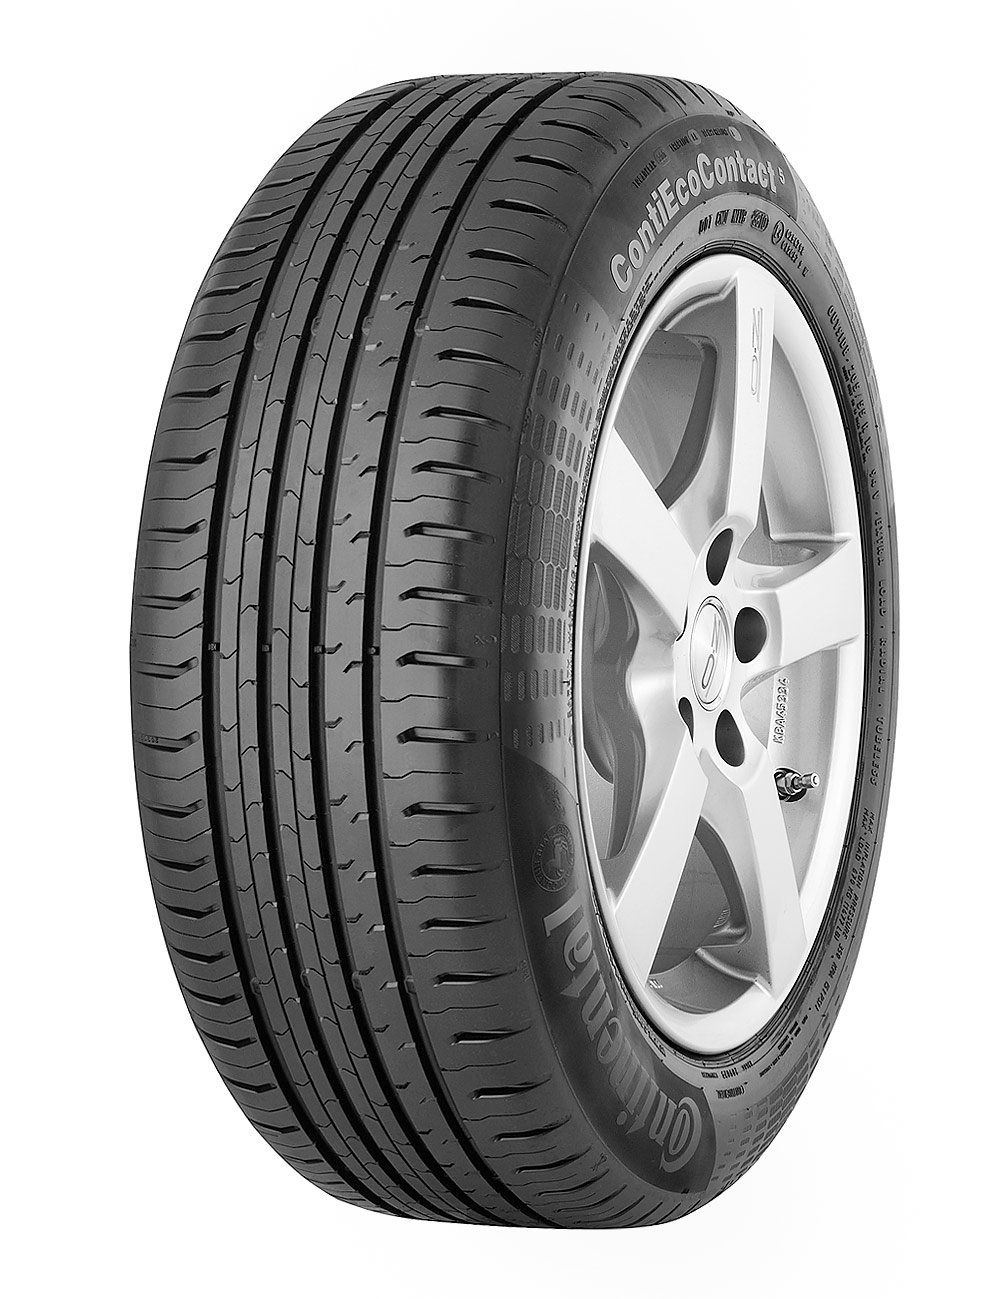 Anvelopa vara CONTINENTAL ECO CONTACT 5 185/55 R15 86H